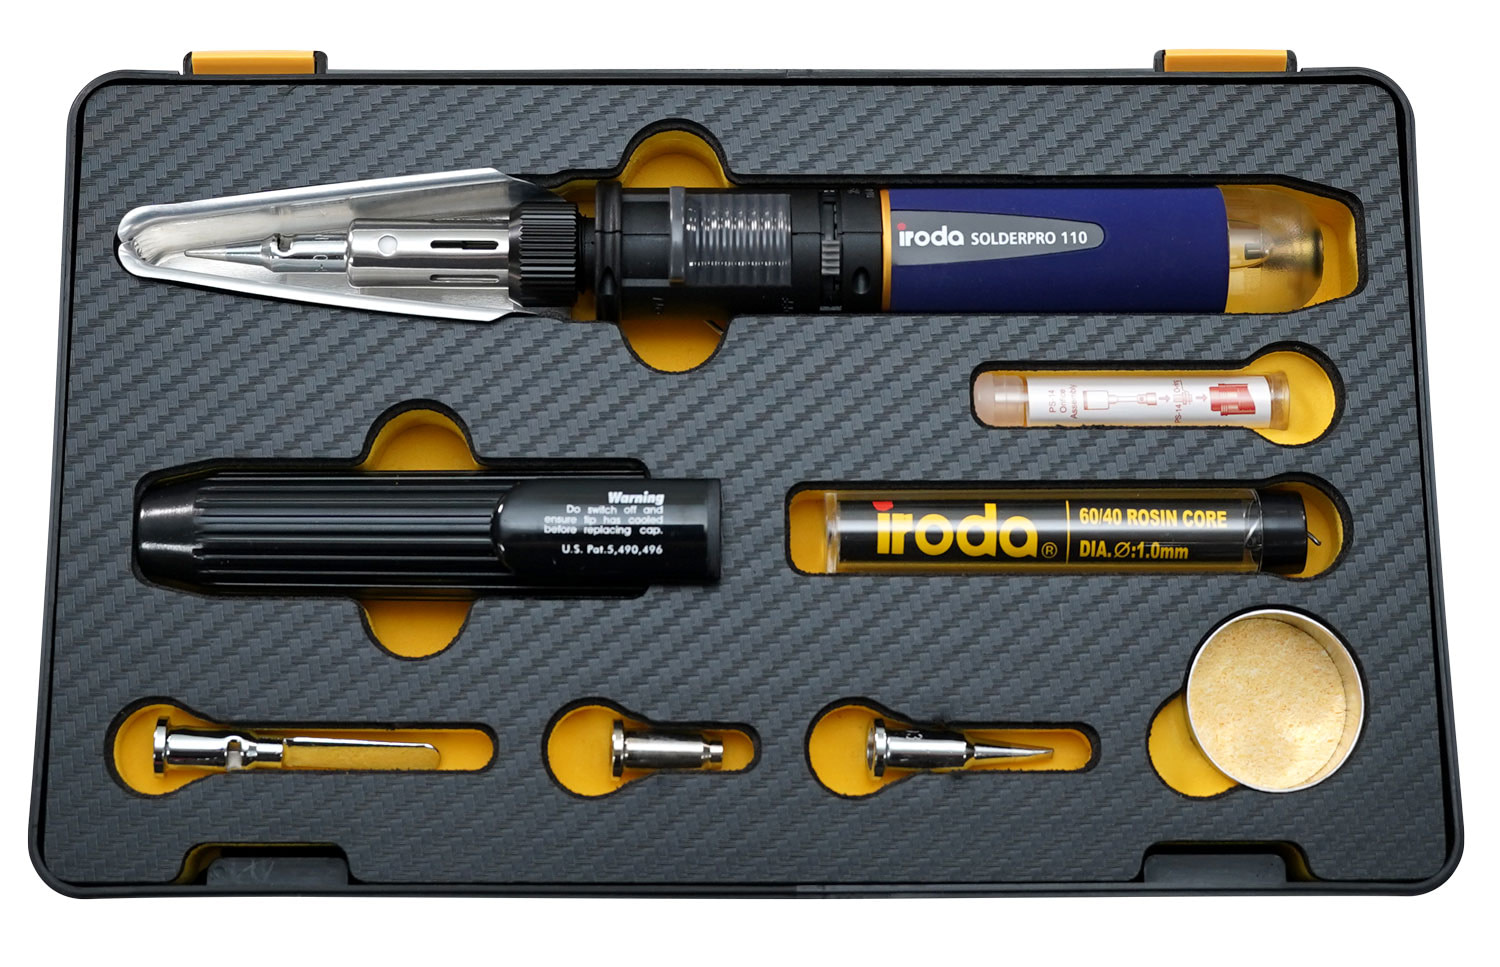 SOLDERPRO 110KB Professional Butane Soldering Iron Kit with 3 additional soldering tips from Pro-Iroda